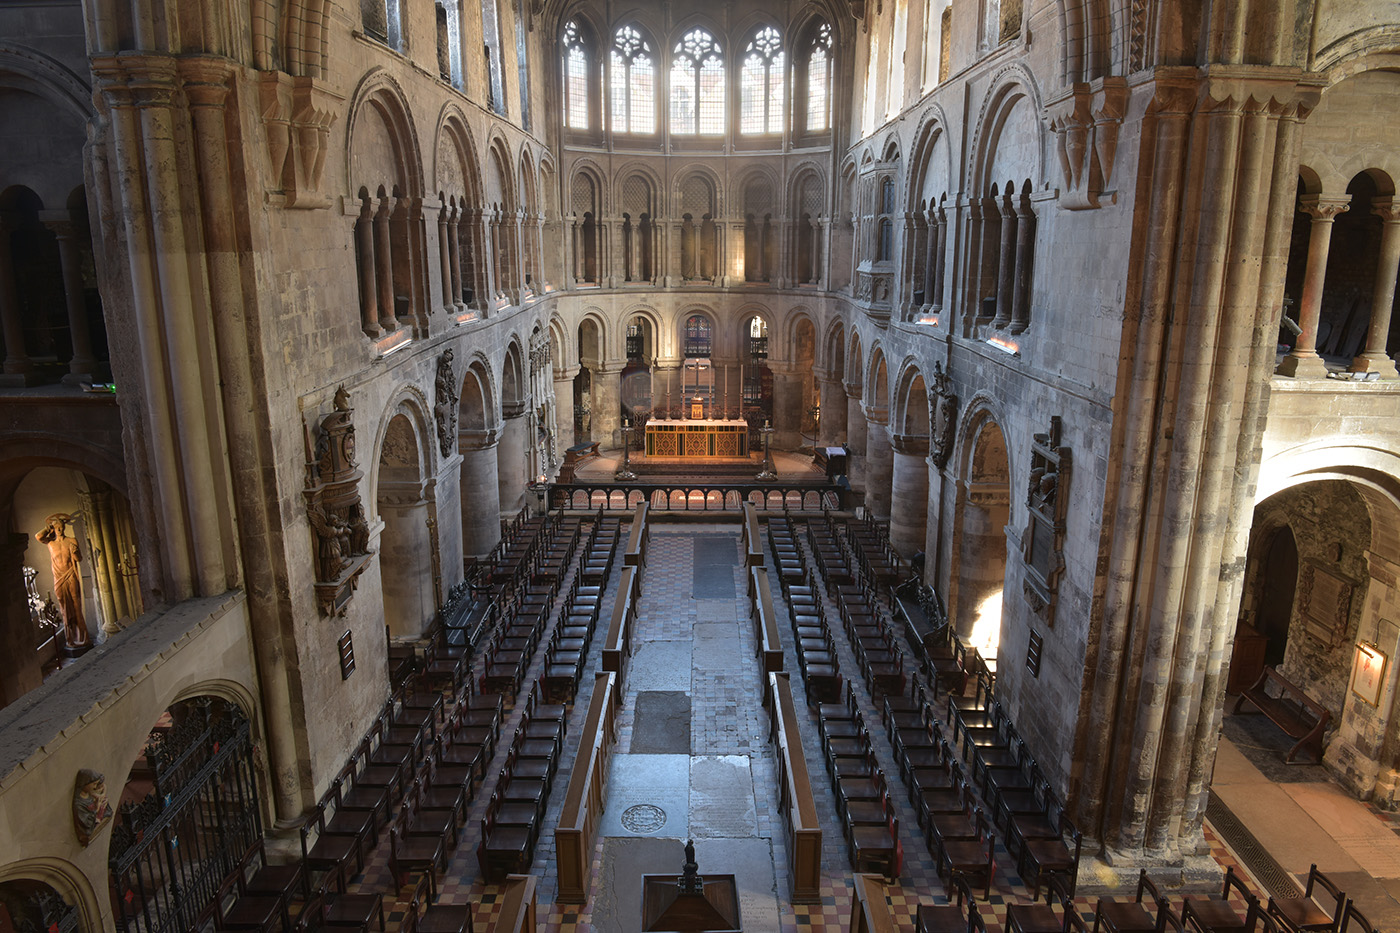 The interior of St Bartholomew the Great church.